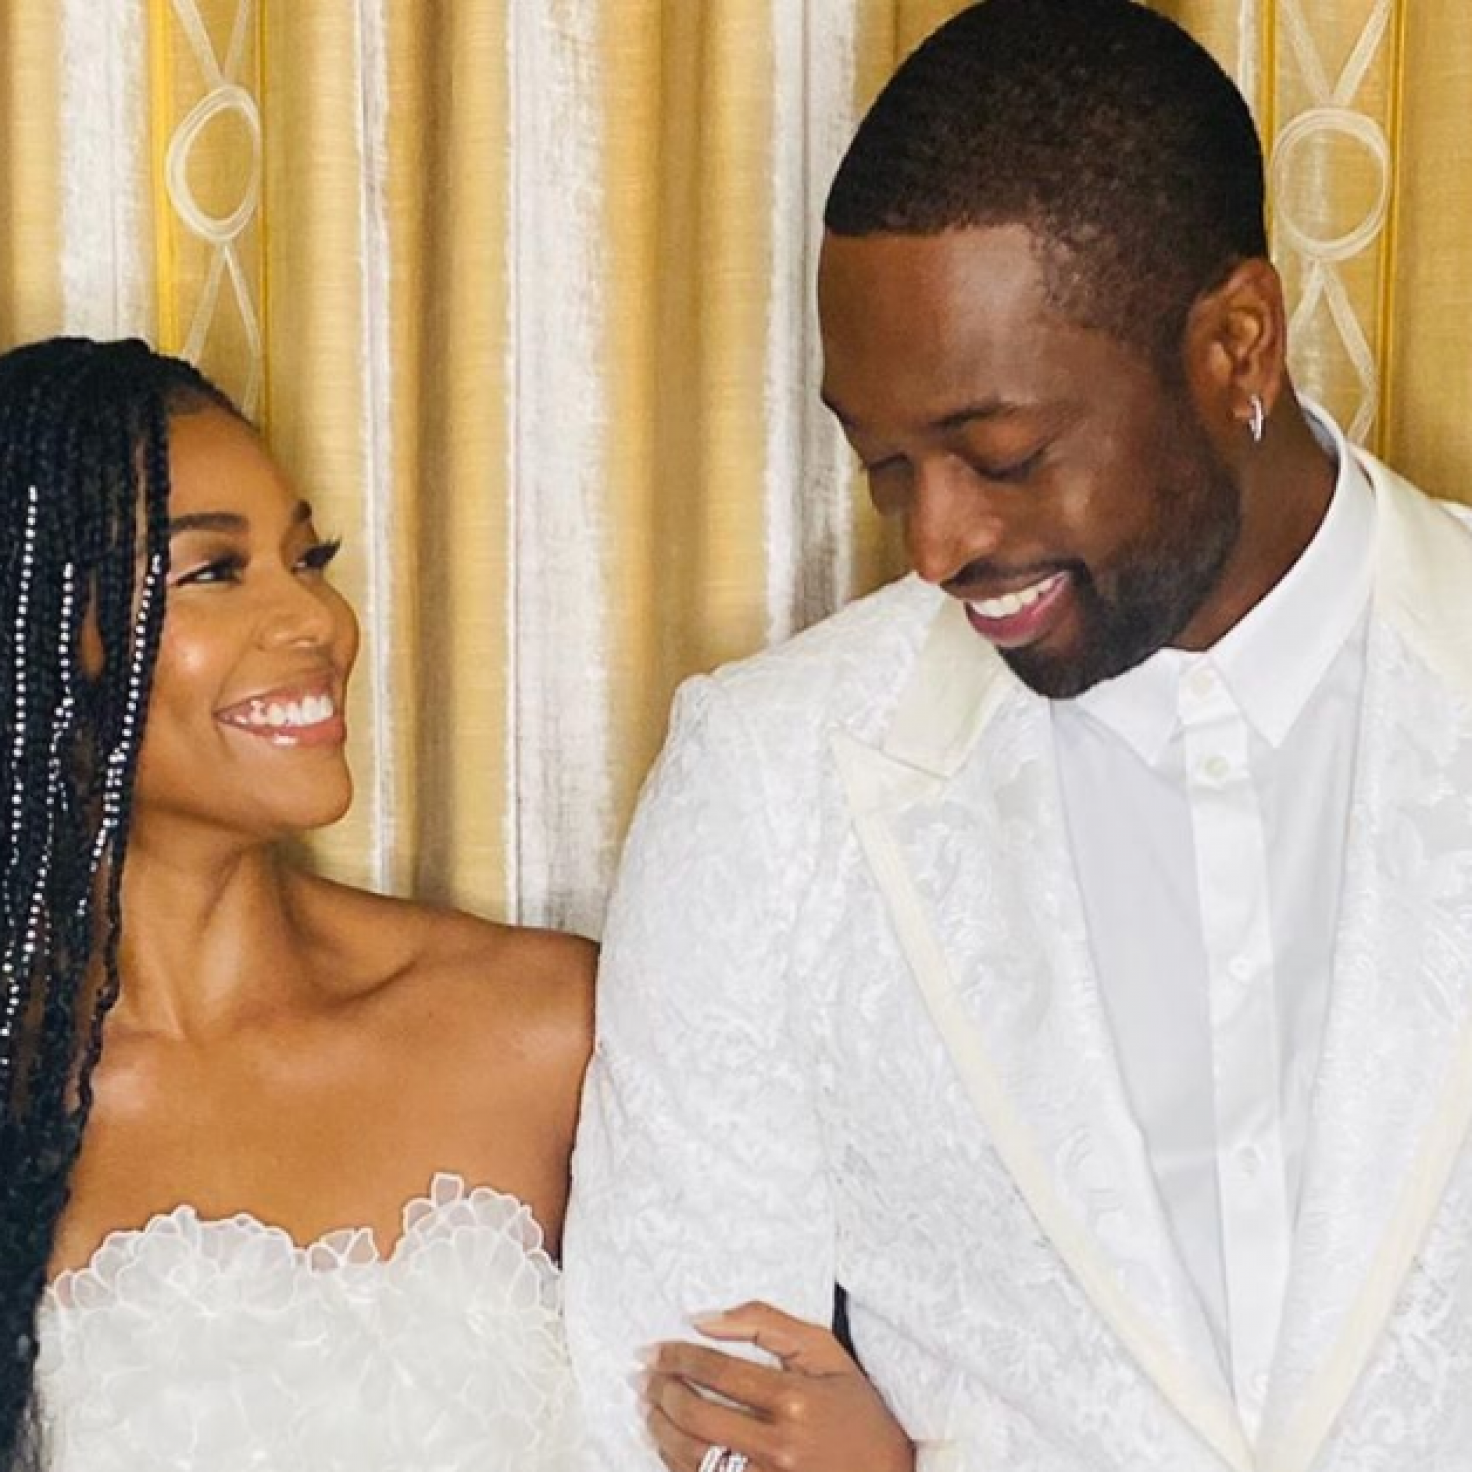 Dwyane Wade On Why Gabrielle Union Is His Perfect Match